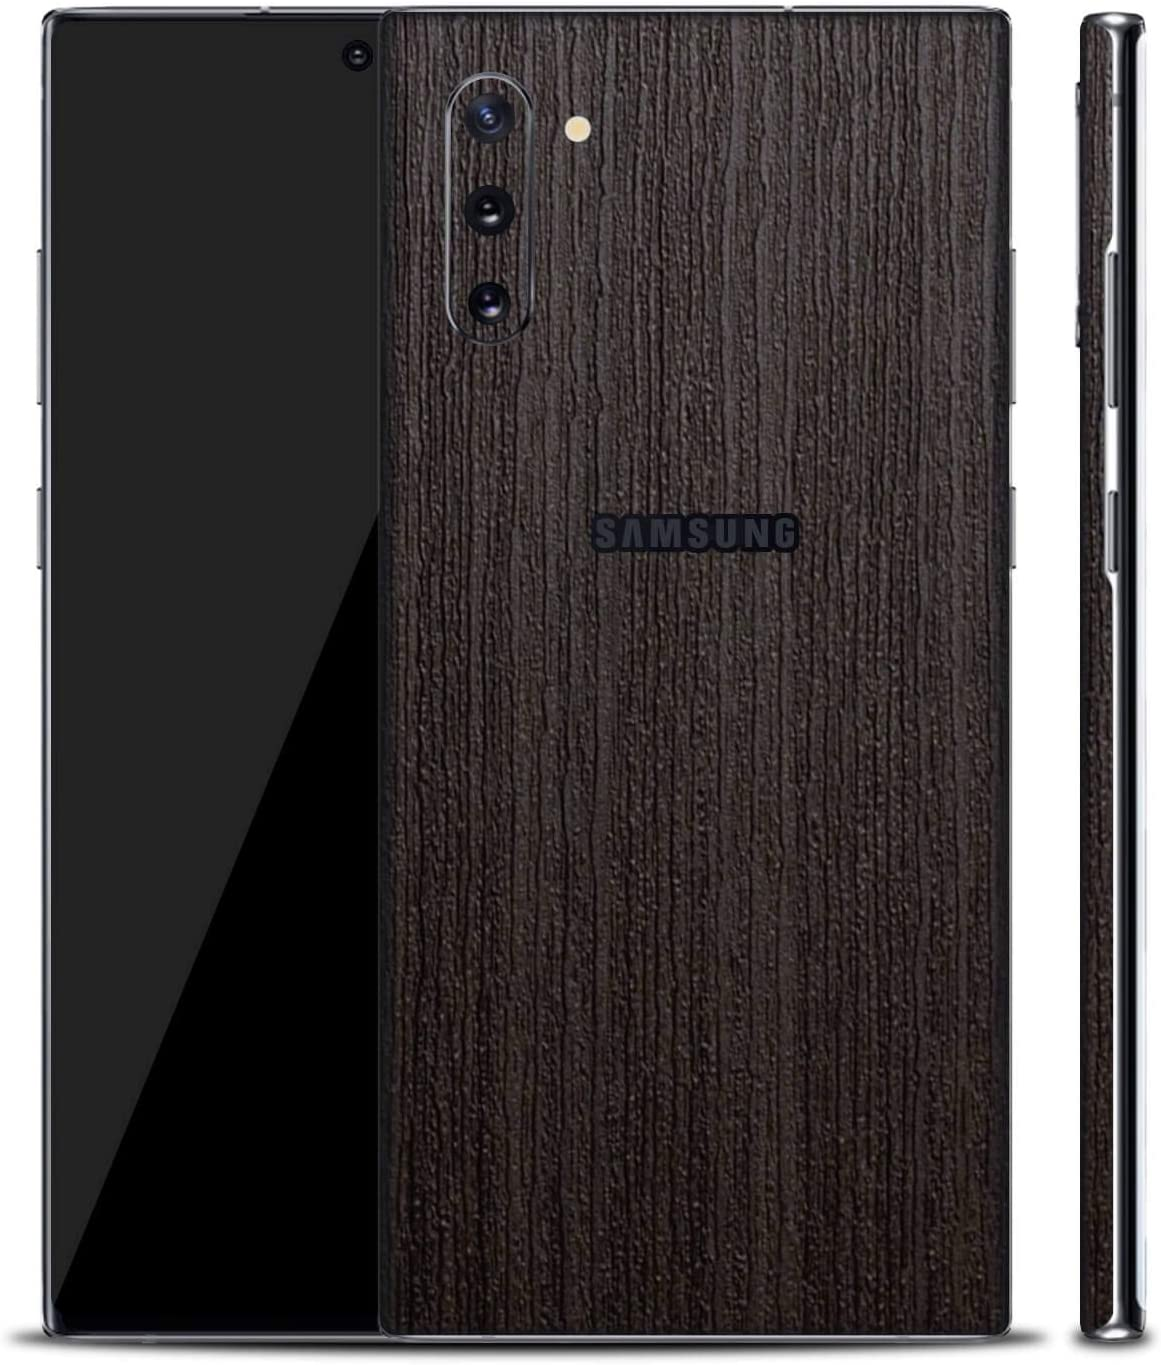 Carved Charcoal XtremeSkins Textured Skin Stickers for Samsung Galaxy Note 10